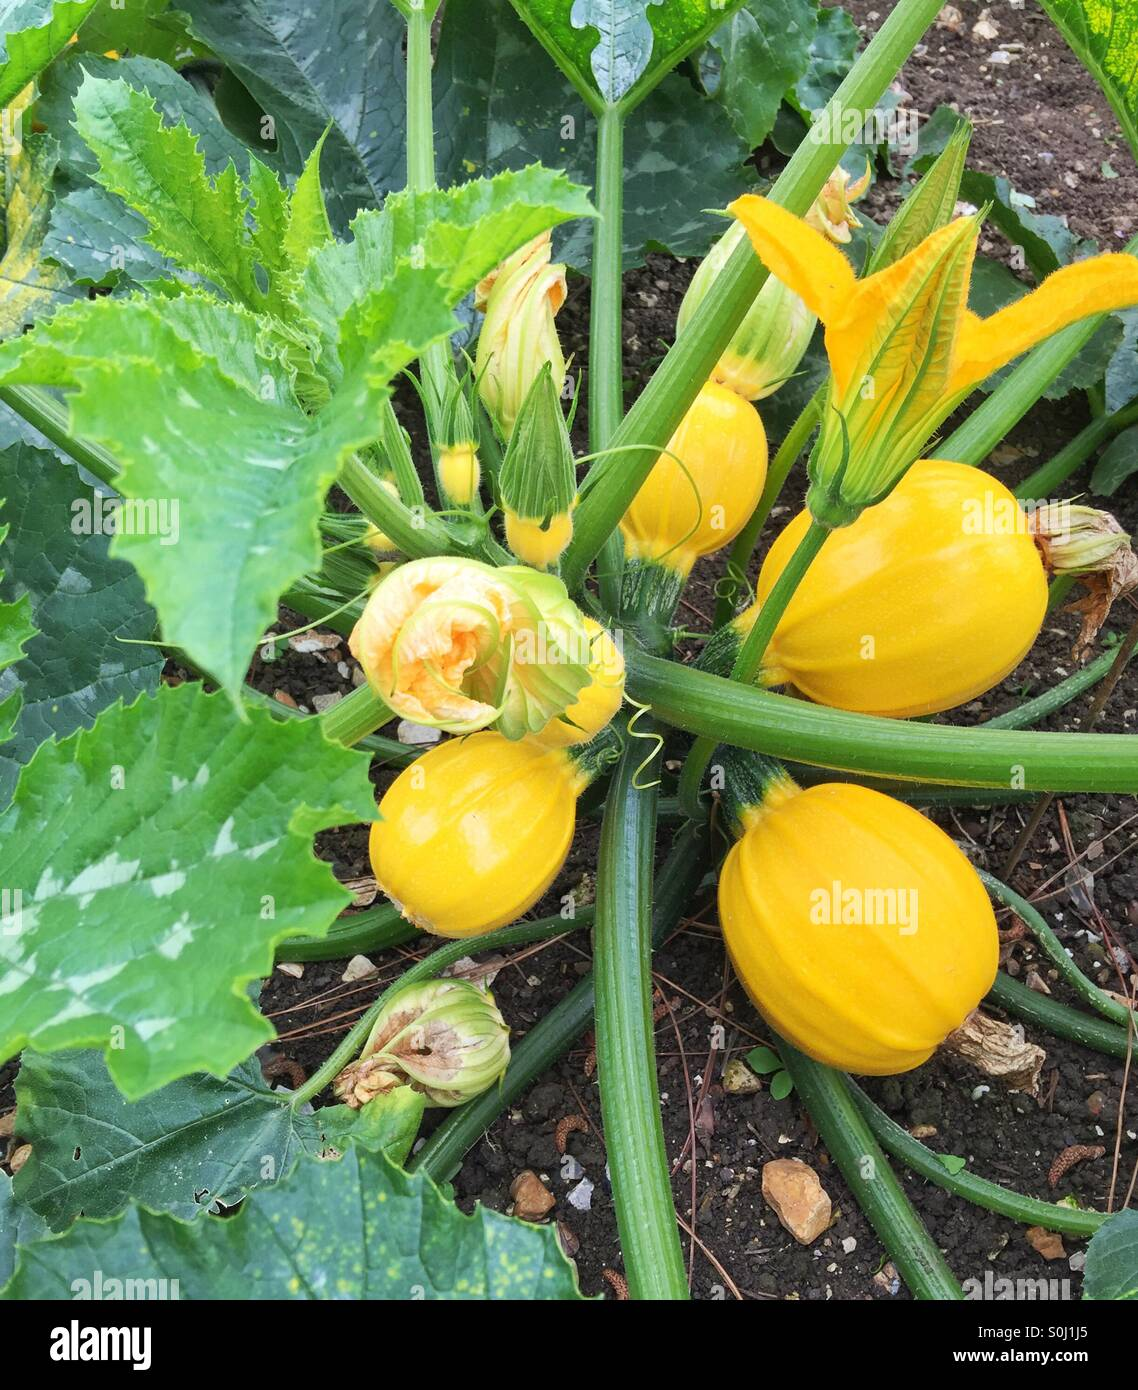 Pumpkins growing in the garden - Stock Image